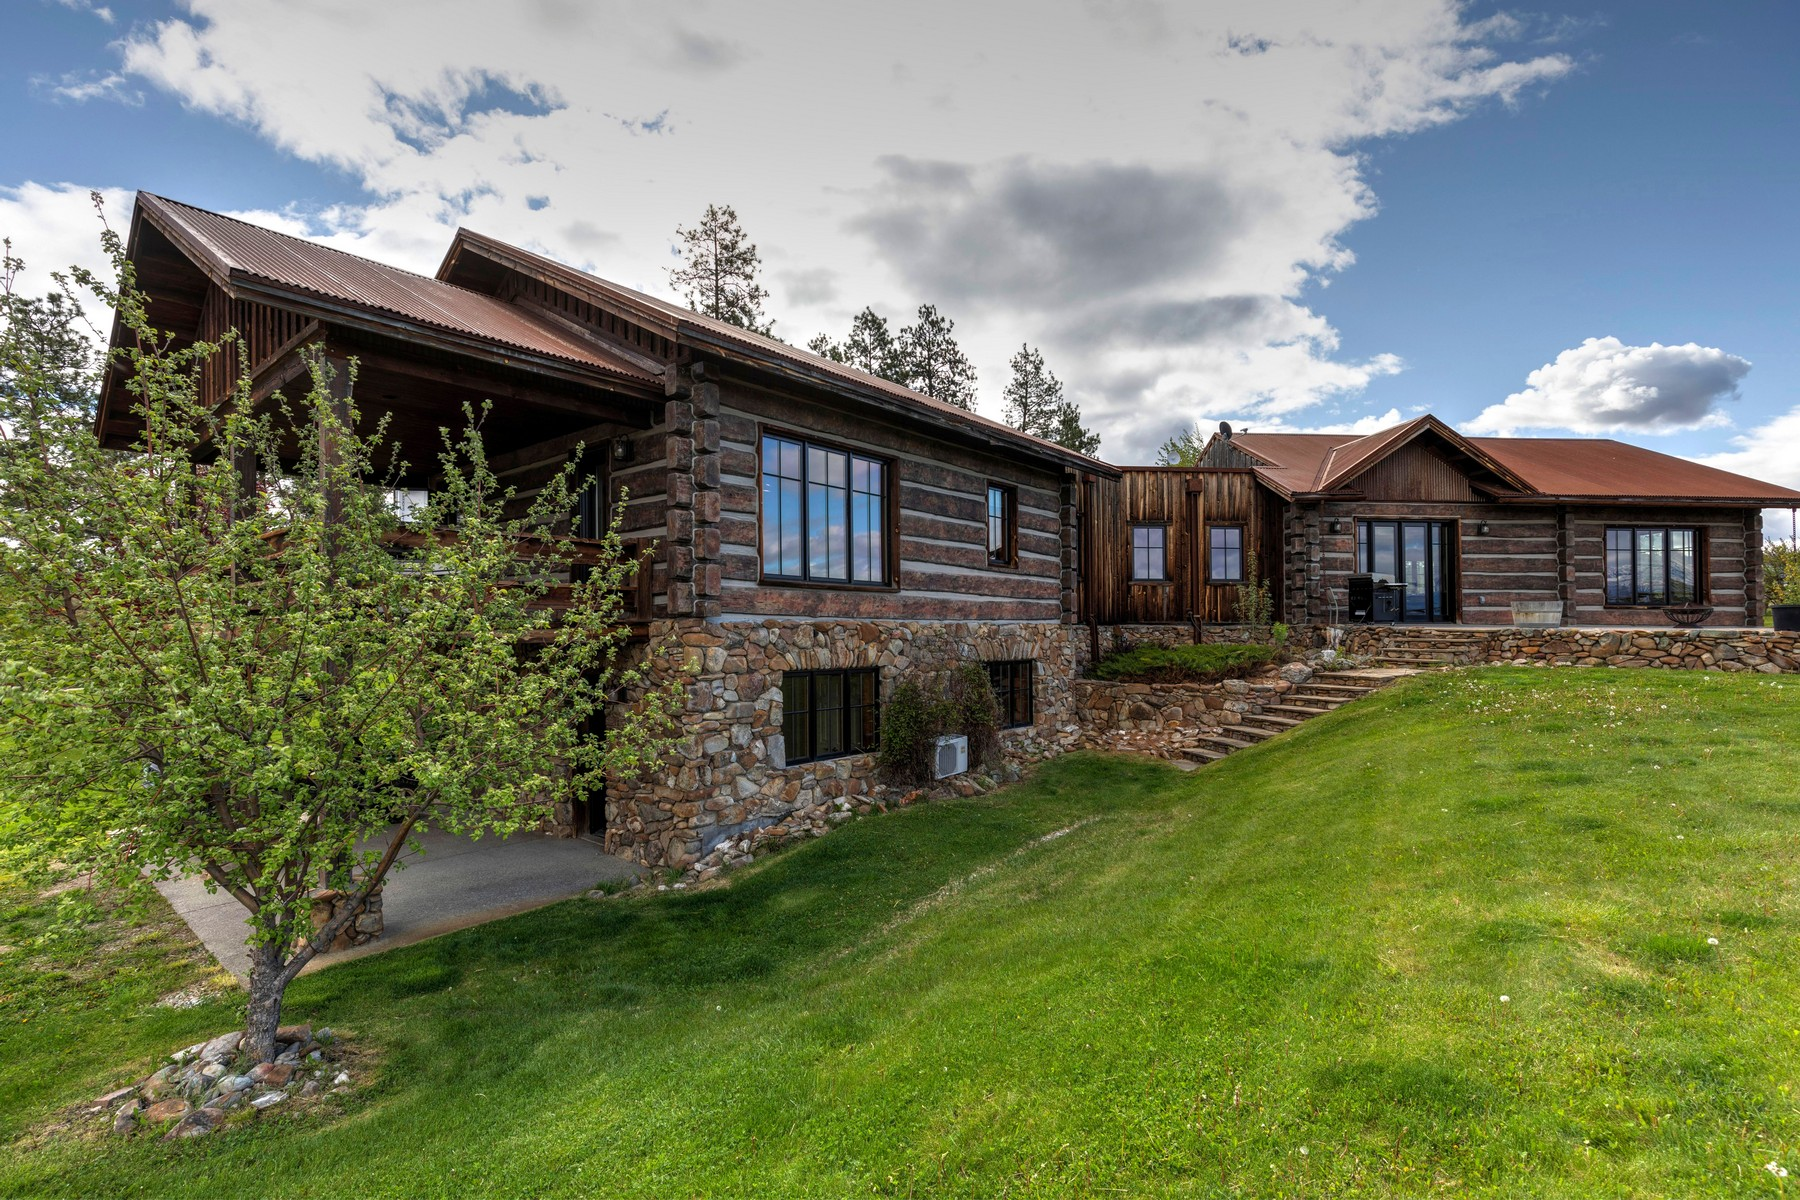 Single Family Homes for Sale at 852 South Sunset Bench Road Stevensville, Montana 59870 United States